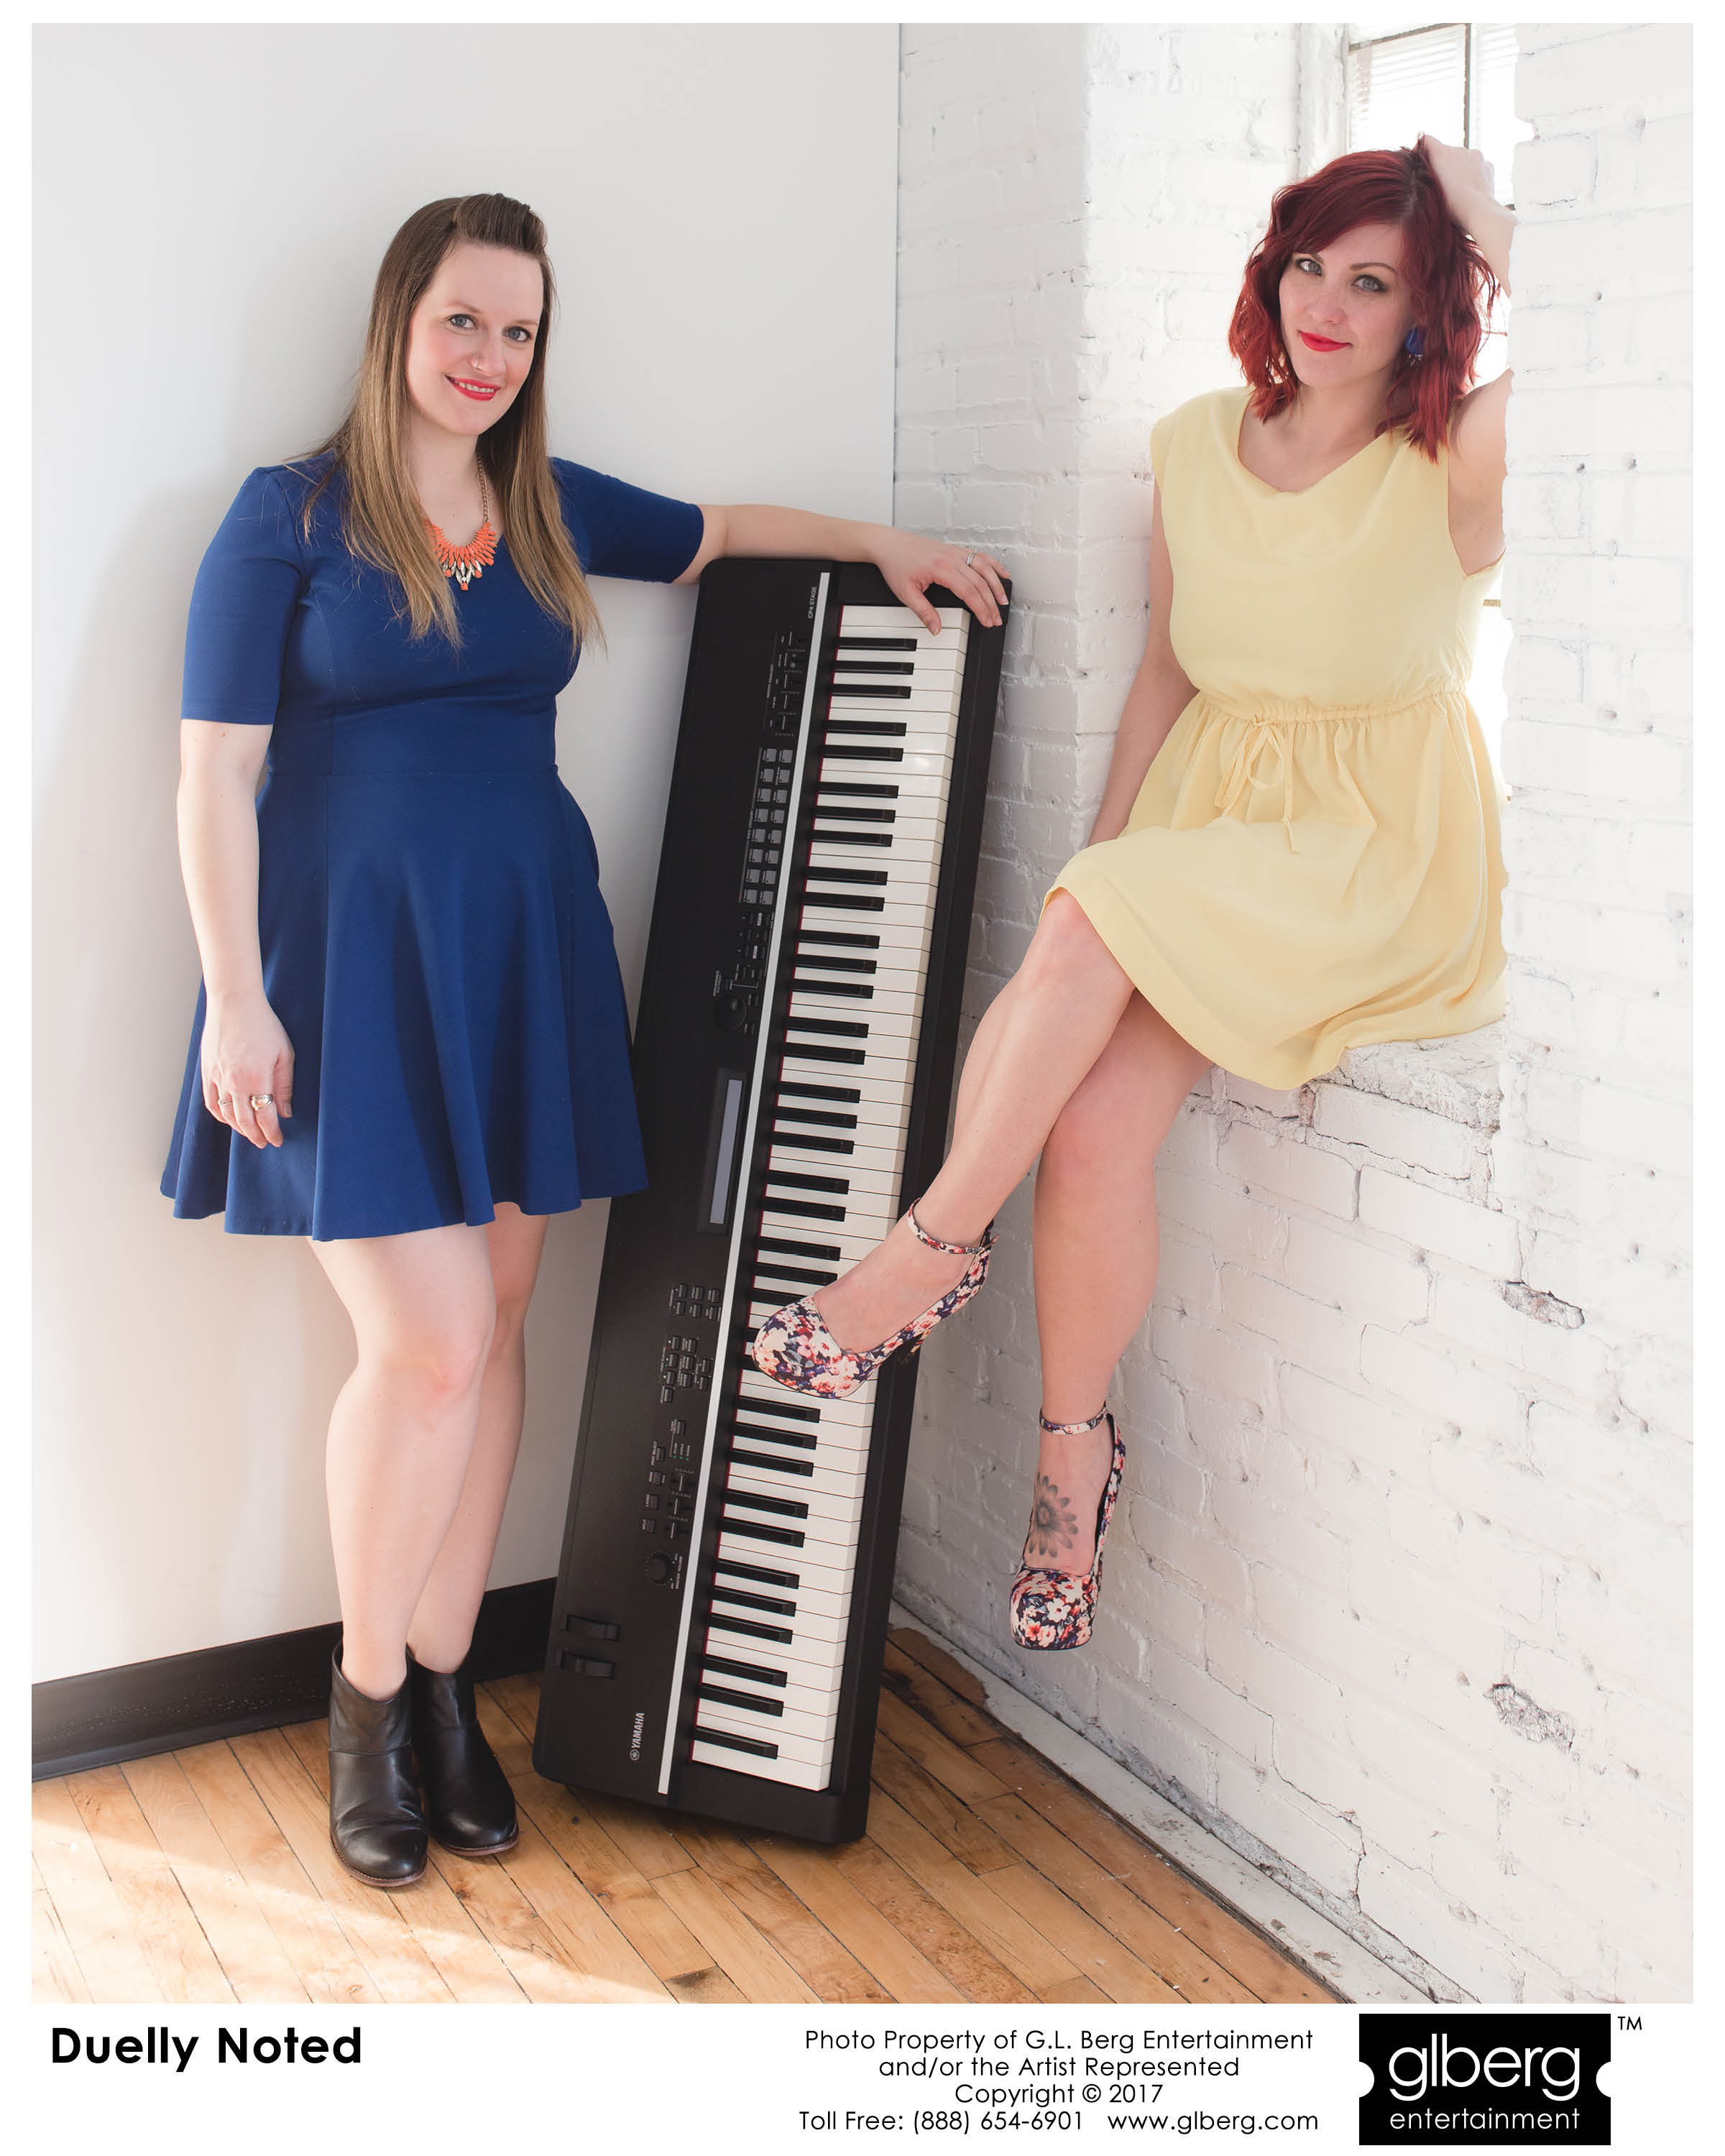 Live piano music from female duo, Duelly Noted